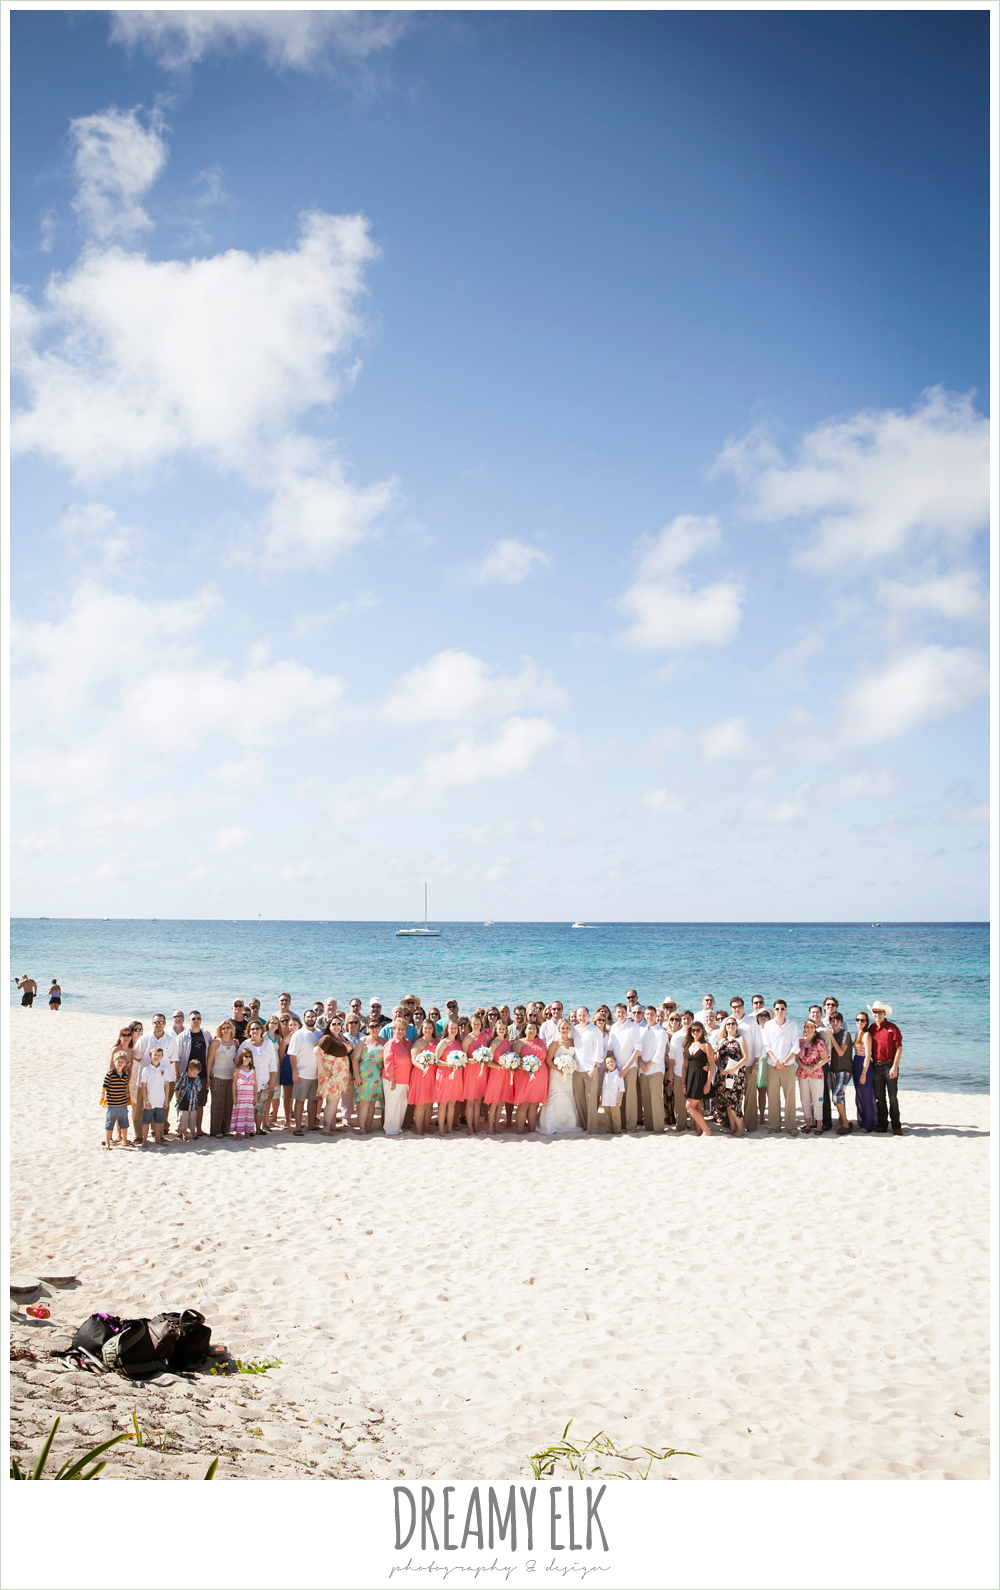 wedding photo with all of the guests, outdoor destination wedding, cozumel {dreamy elk photography and design} photo